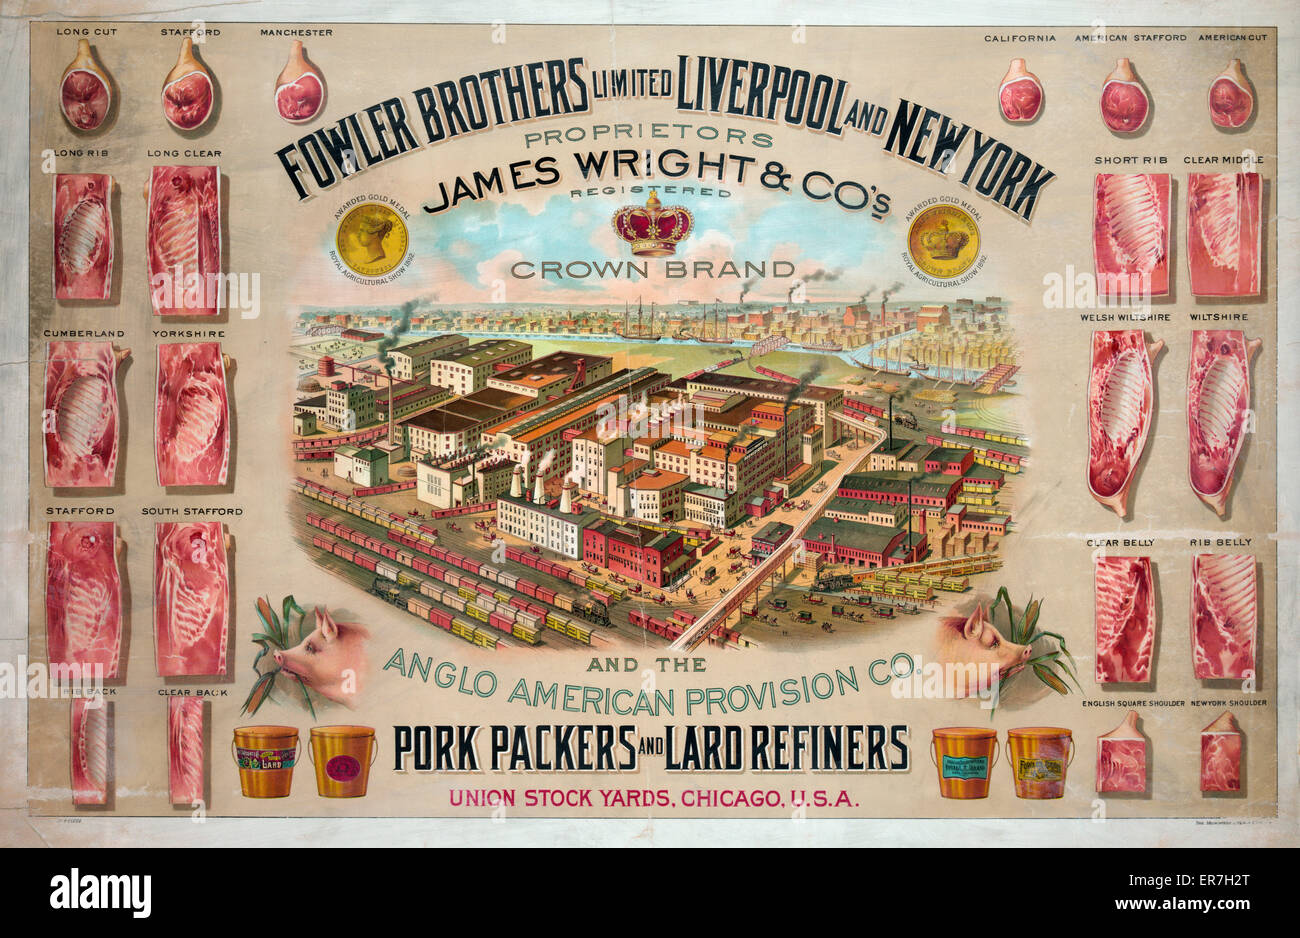 Fowler Brothers Limited Liverpool and New York. Pork packers and lard refiners. - Stock Image